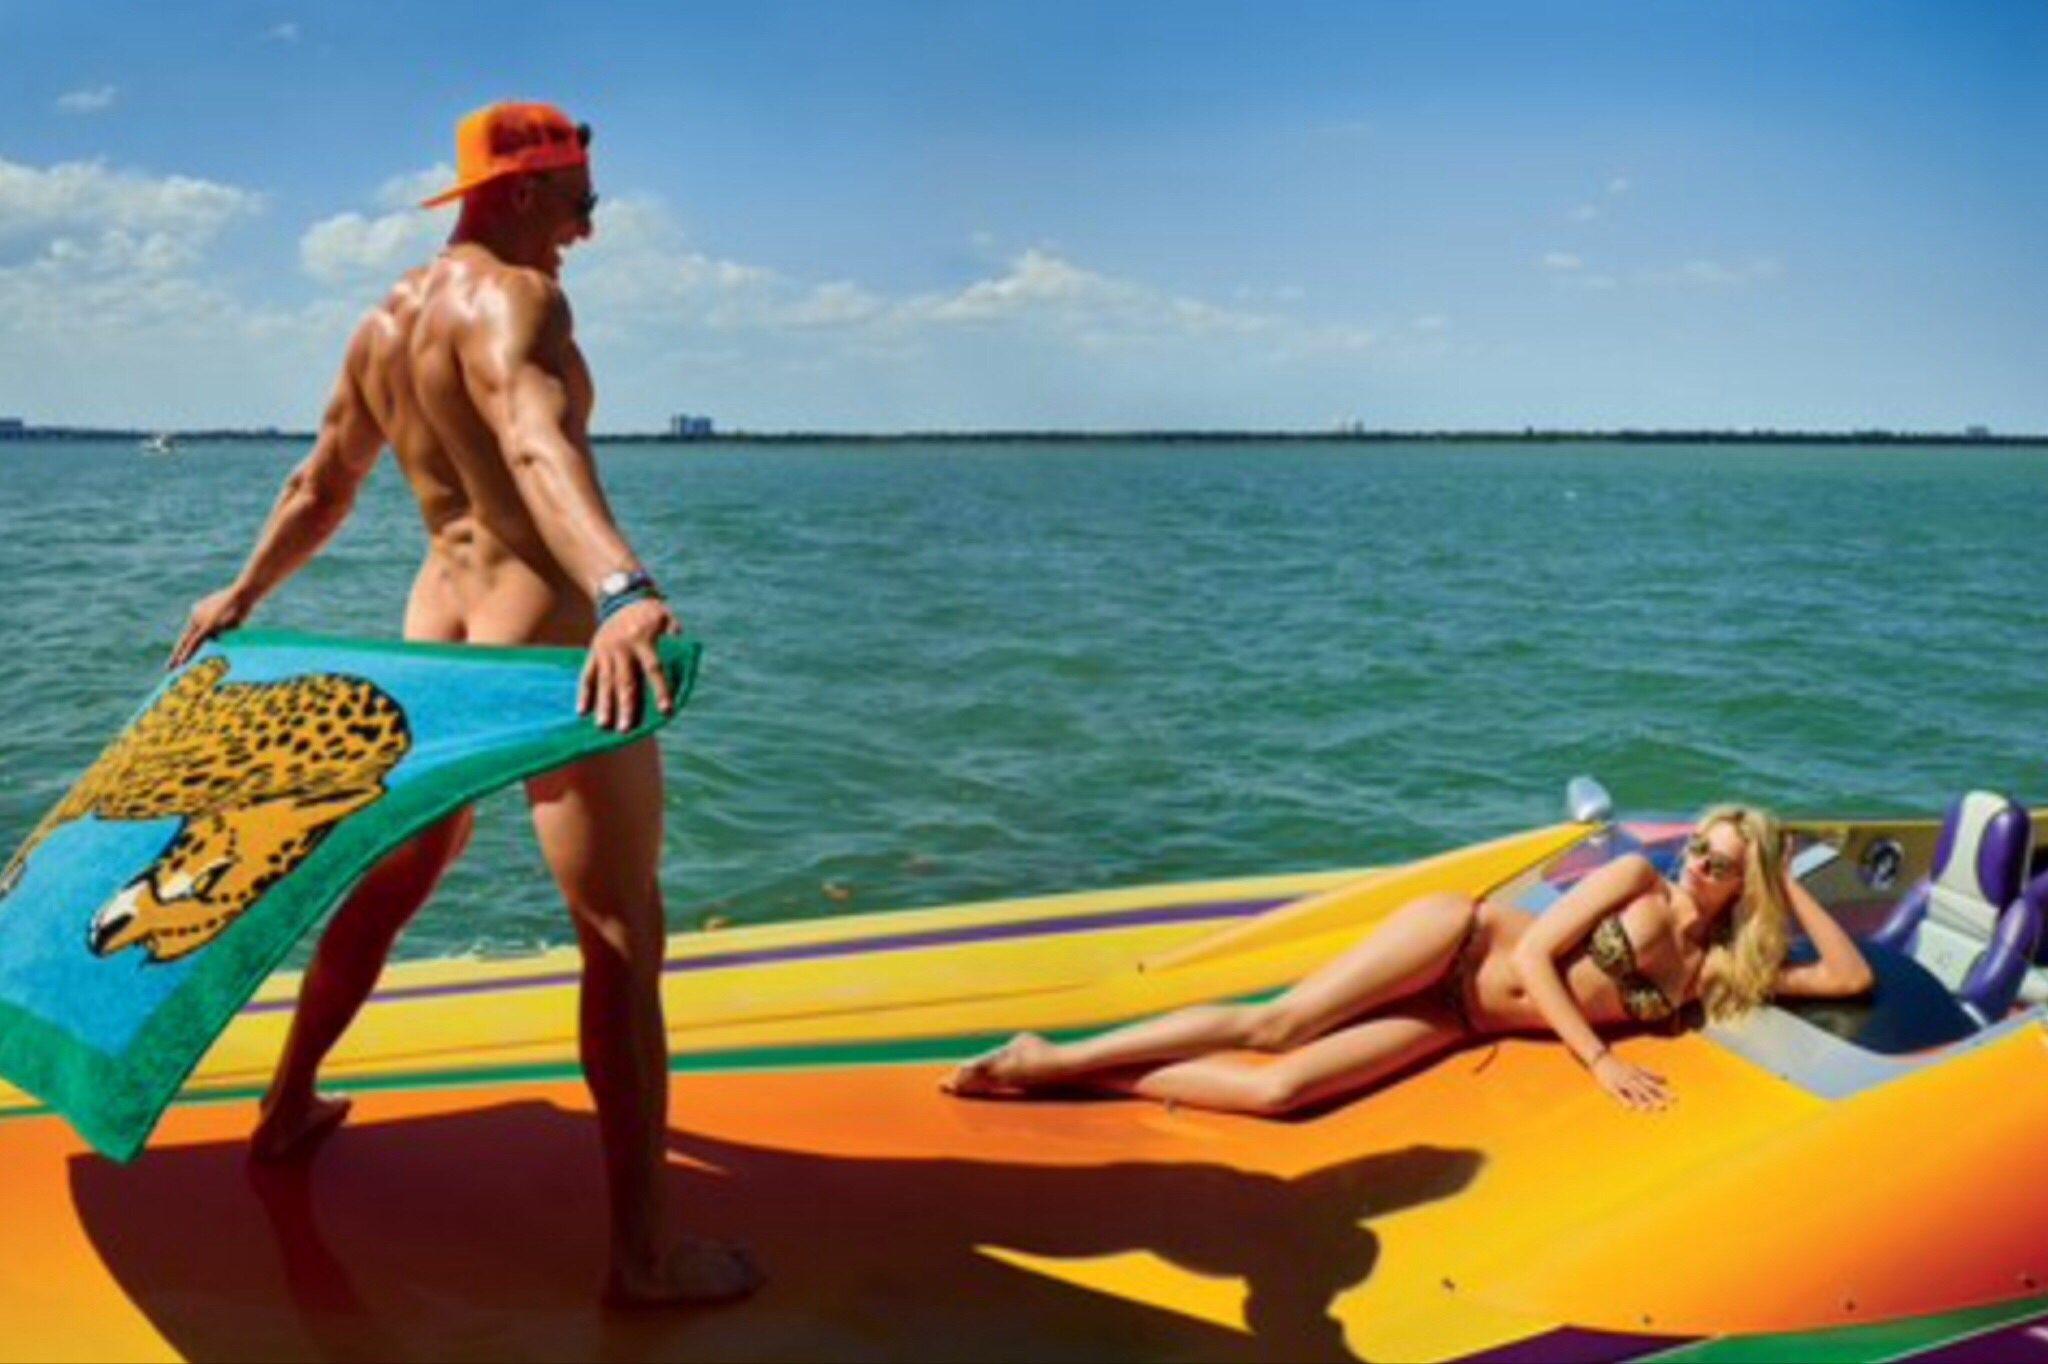 Witness Rob Gronkowski and Hailey Clauson in All Their